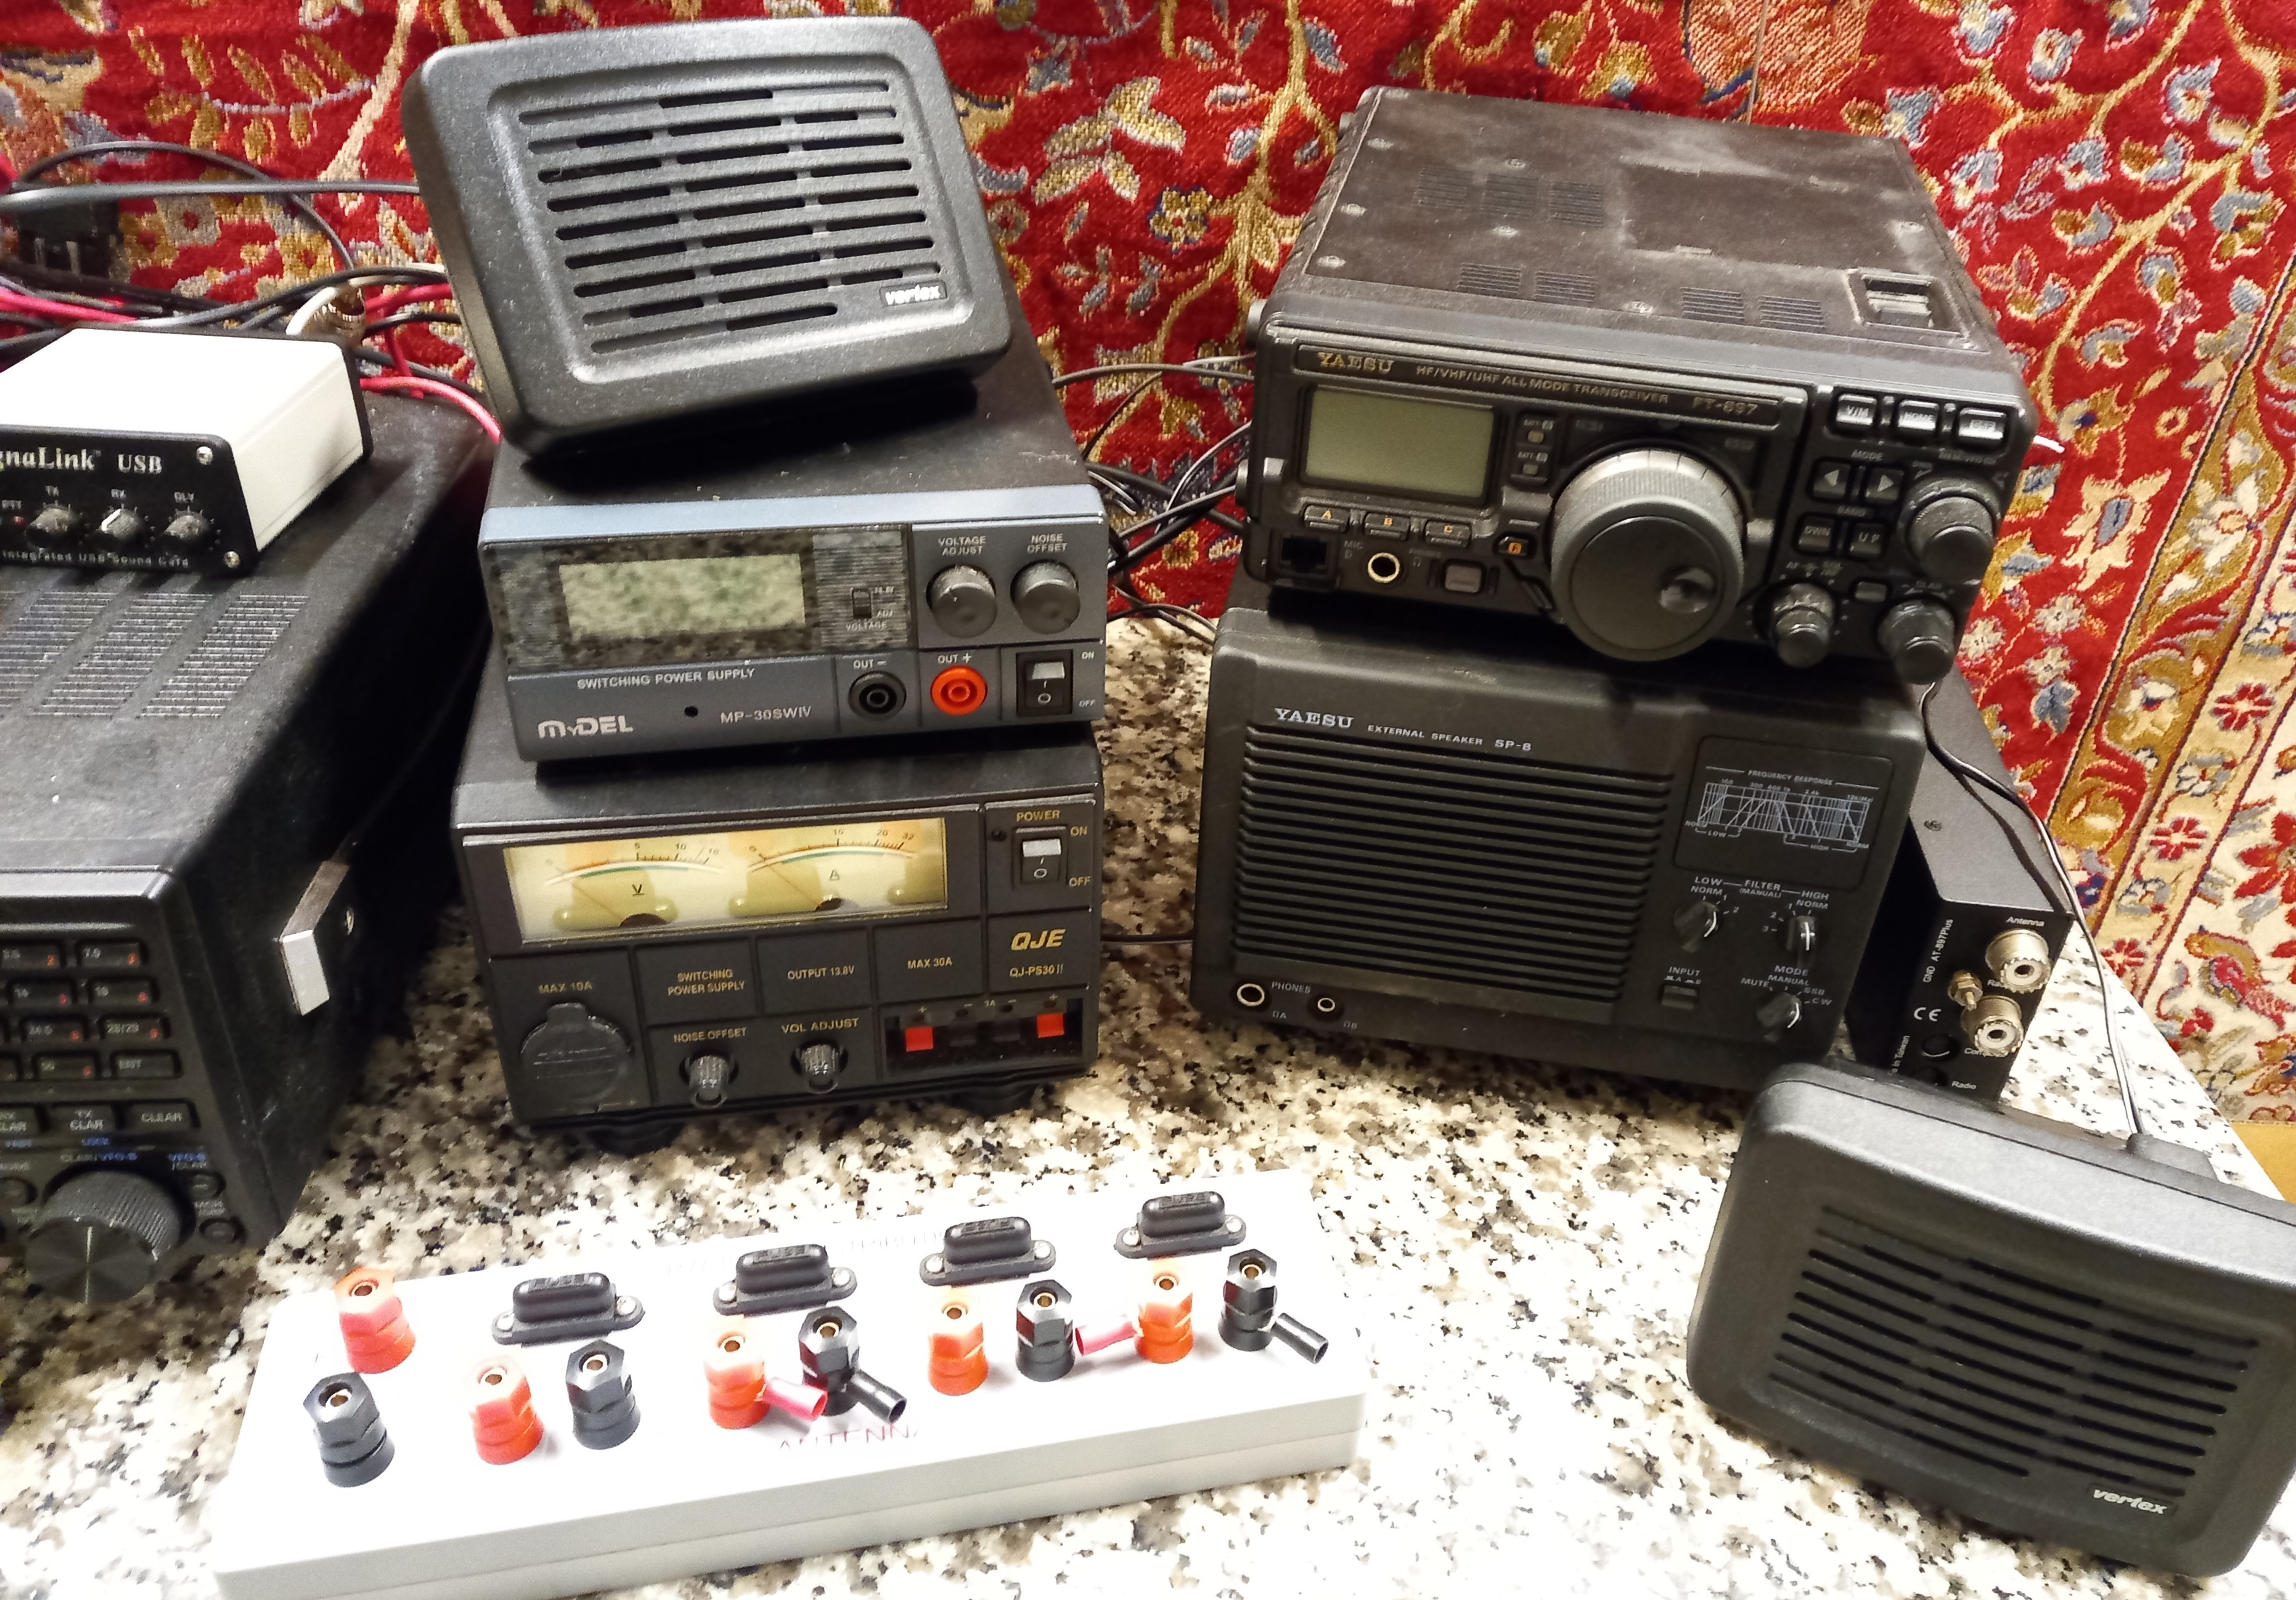 A collection of amateur 'ham' radio equipment, comprising: a Yaesu FTDX 3000 transceiver, an ATU 897 - Image 9 of 13